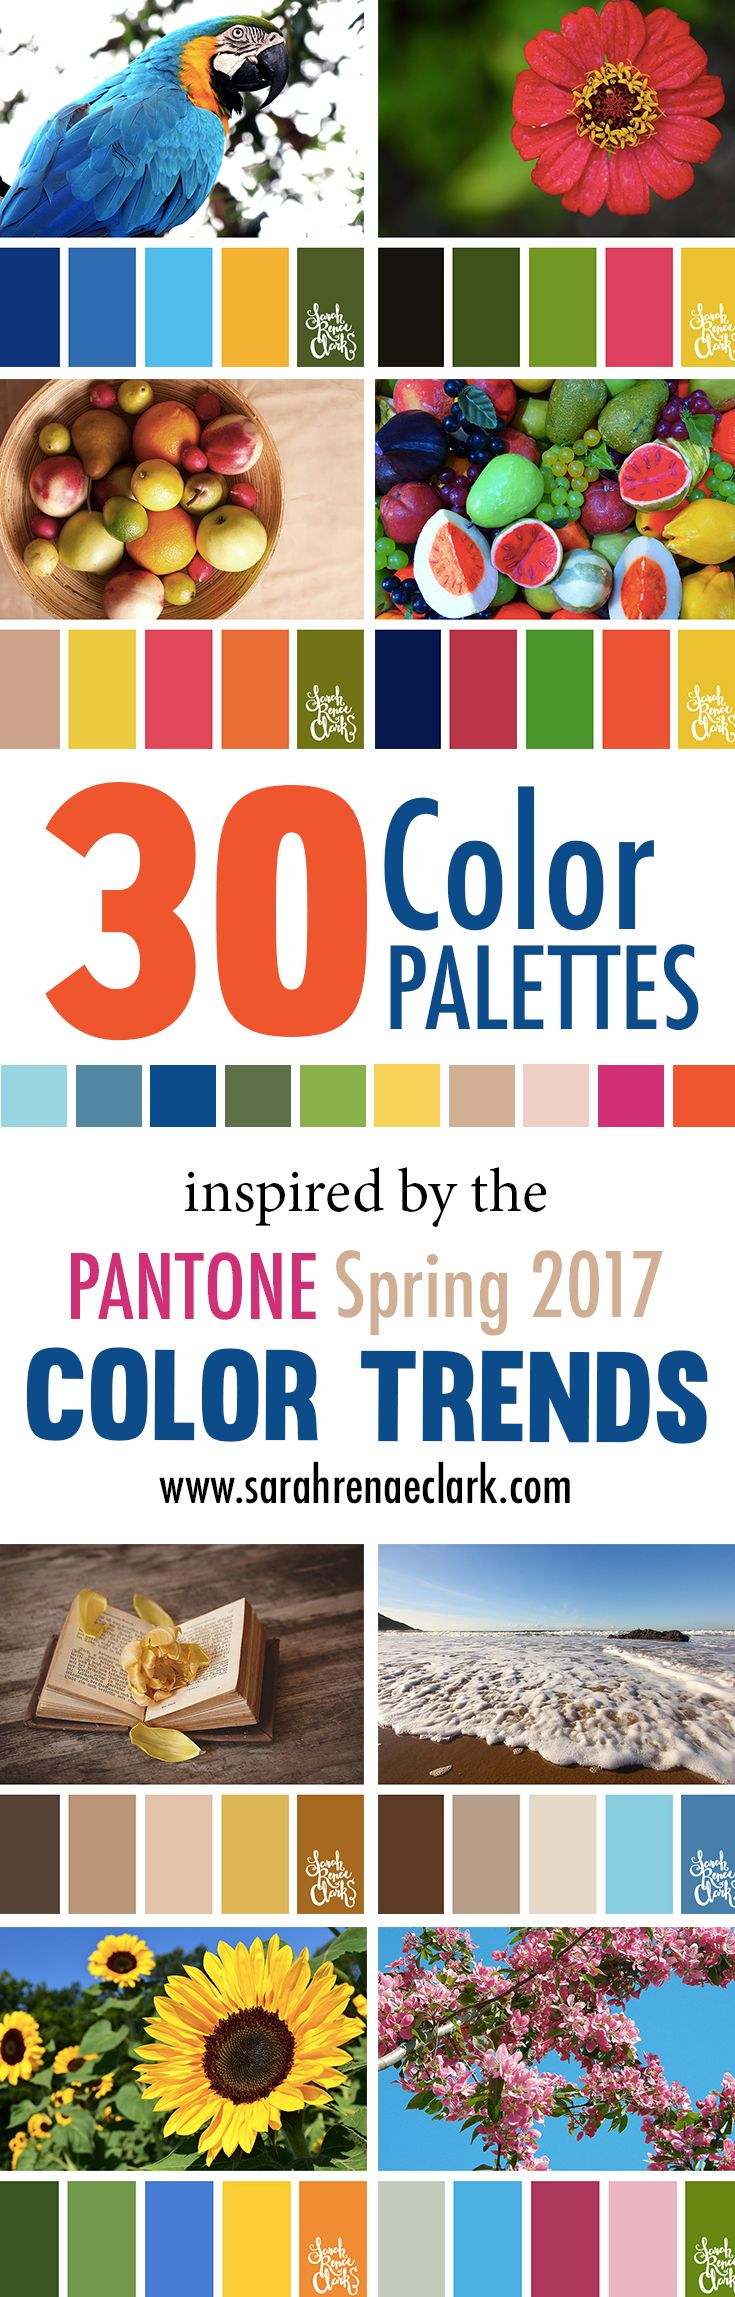 Book color scheme - 30 Color Palettes Inspired By The Pantone Spring 2017 Color Trends